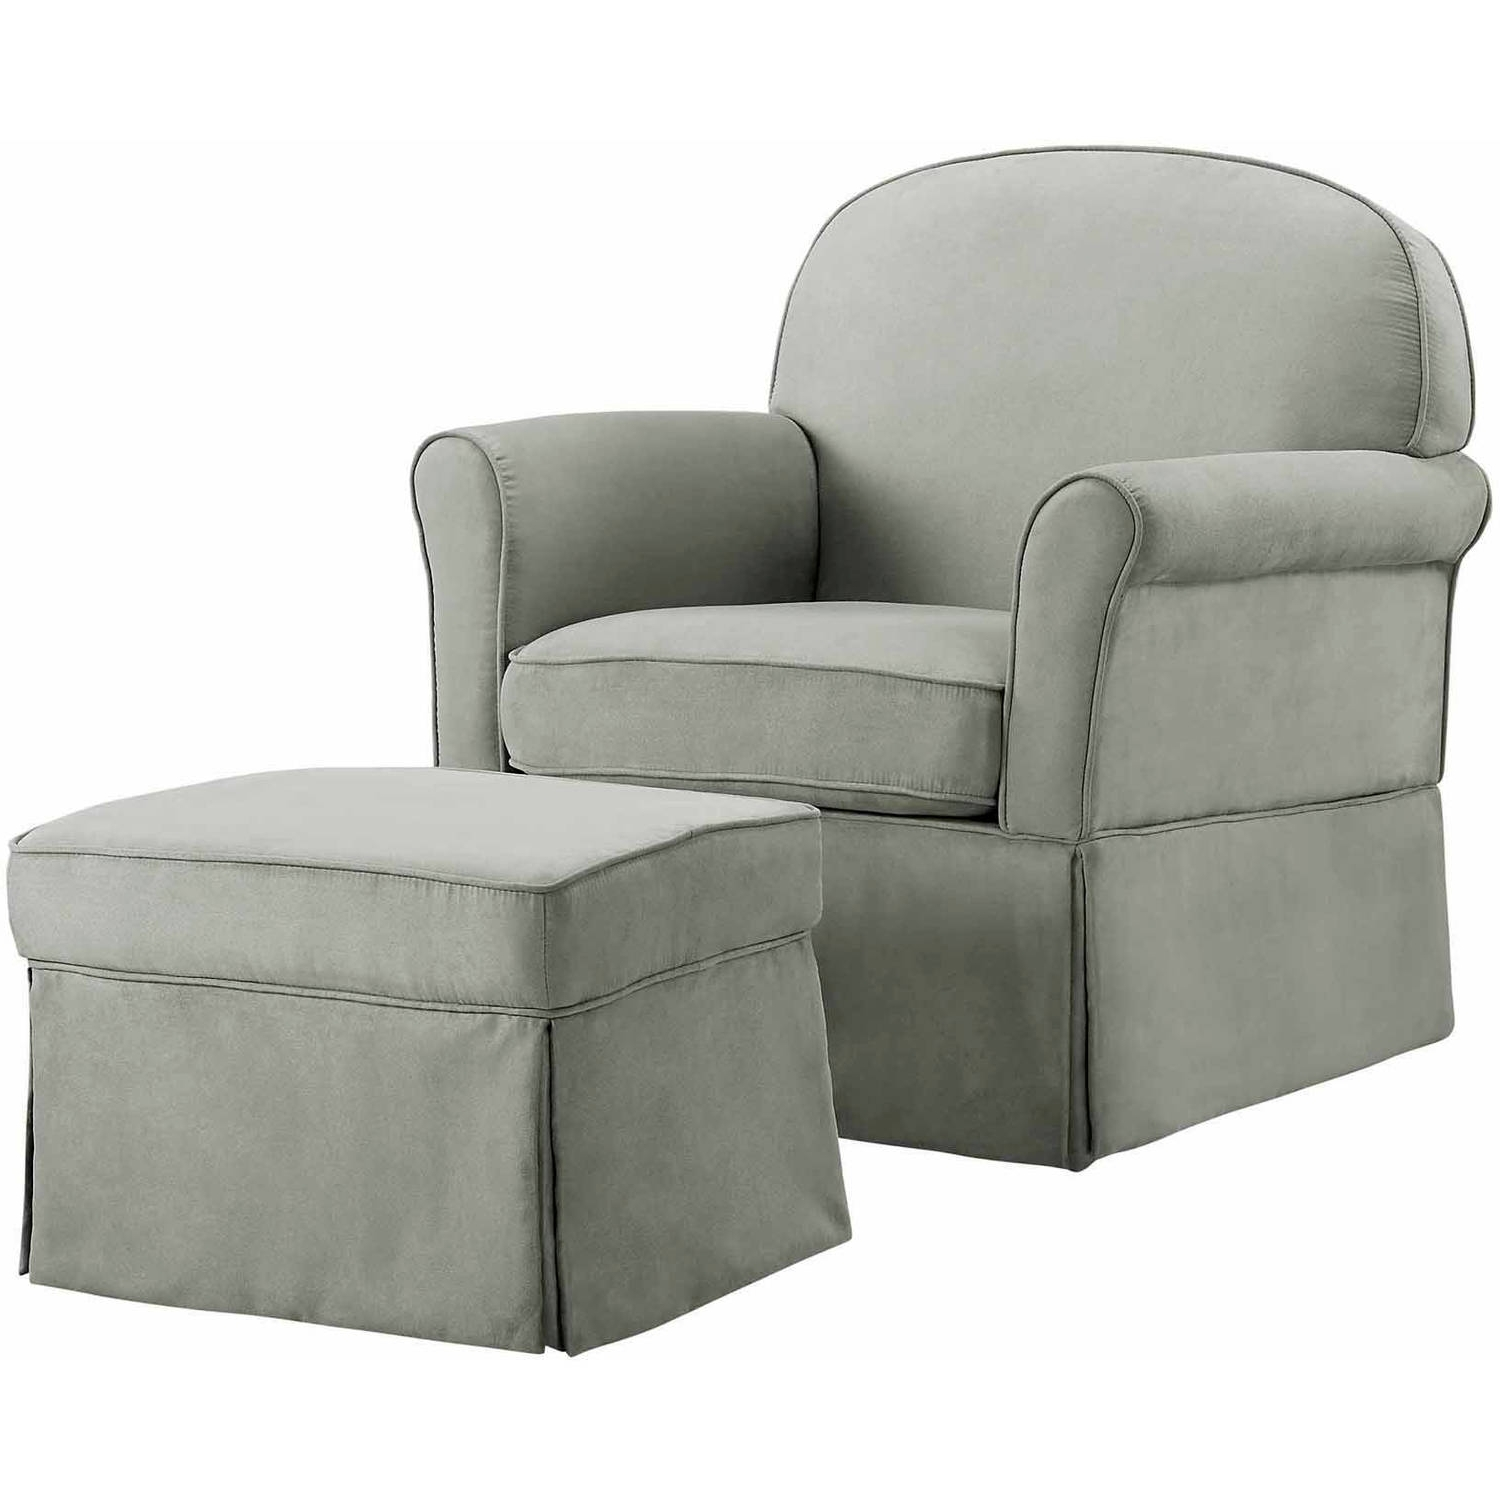 Baby Relax Evan Swivel Glider And Ottoman Gray – Walmart With Favorite Gliders With Ottoman (View 3 of 20)